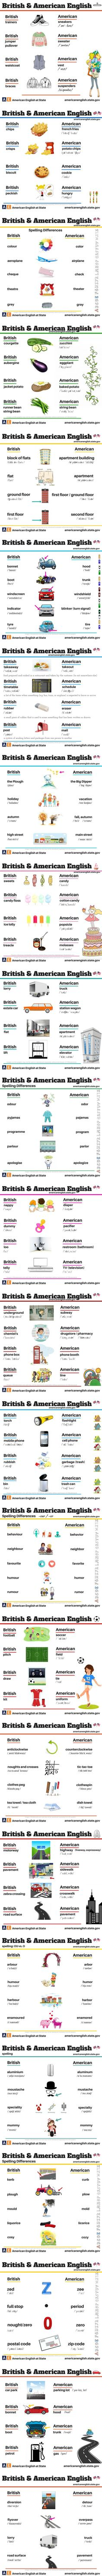 This chart gives many differences in British and American English. They are the same language, but the choice of words are sometimes different due to location in the world. It is interesting to see the differences between what we use for some words that others do not even though we both use the same language.